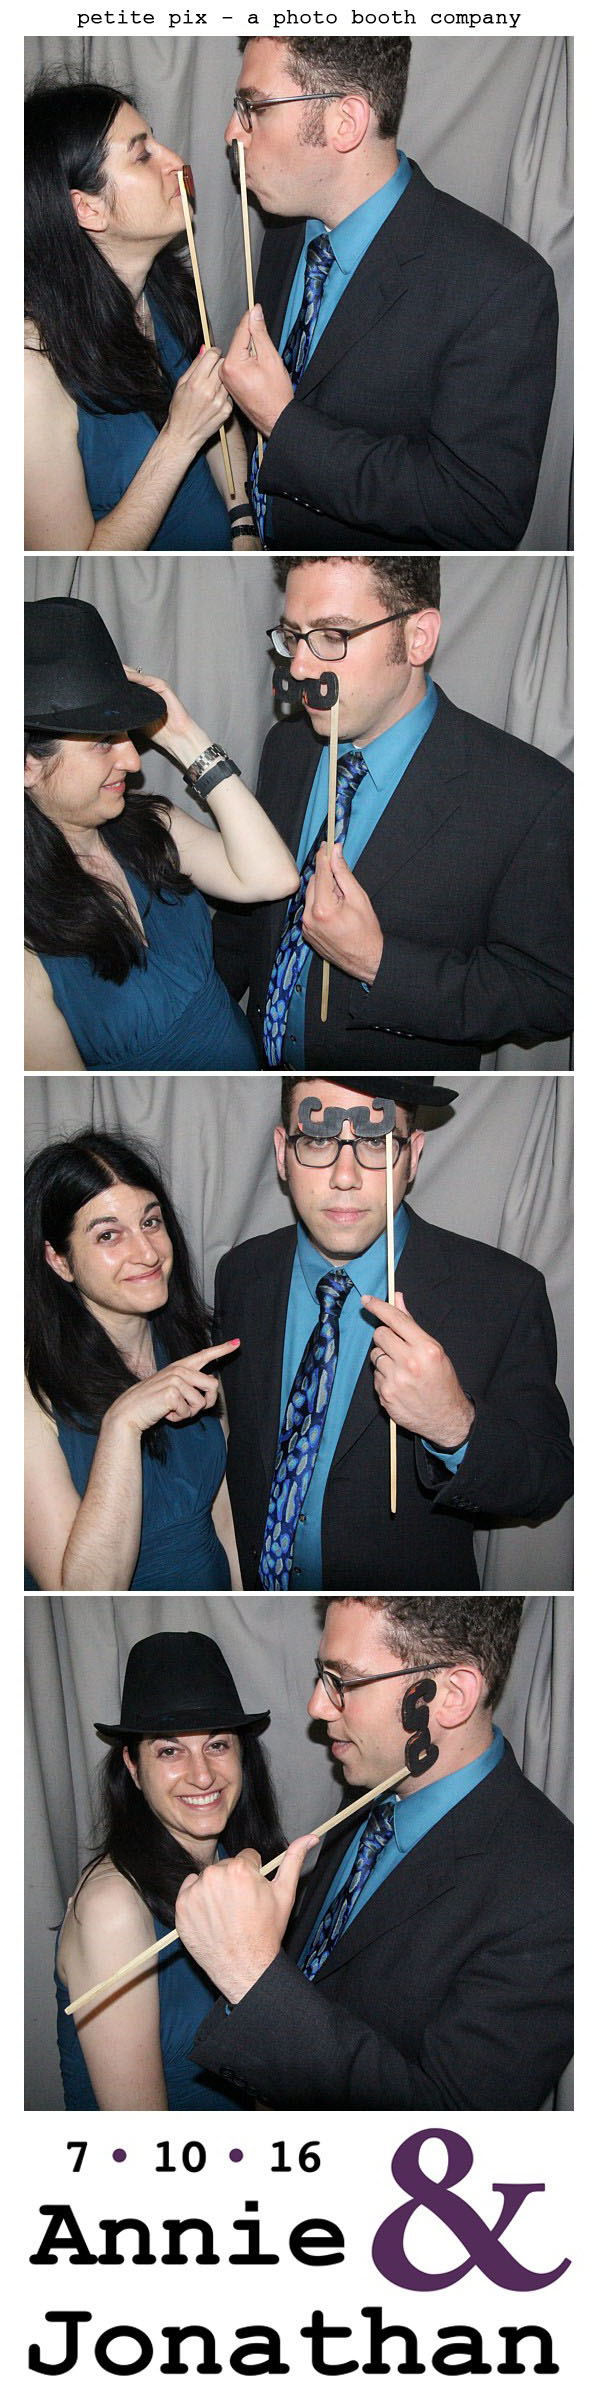 Petite Pix Classic Photo Booth at the Cicada Club in Downtown Los Angeles for Annie and Jonathan's Wedding 48